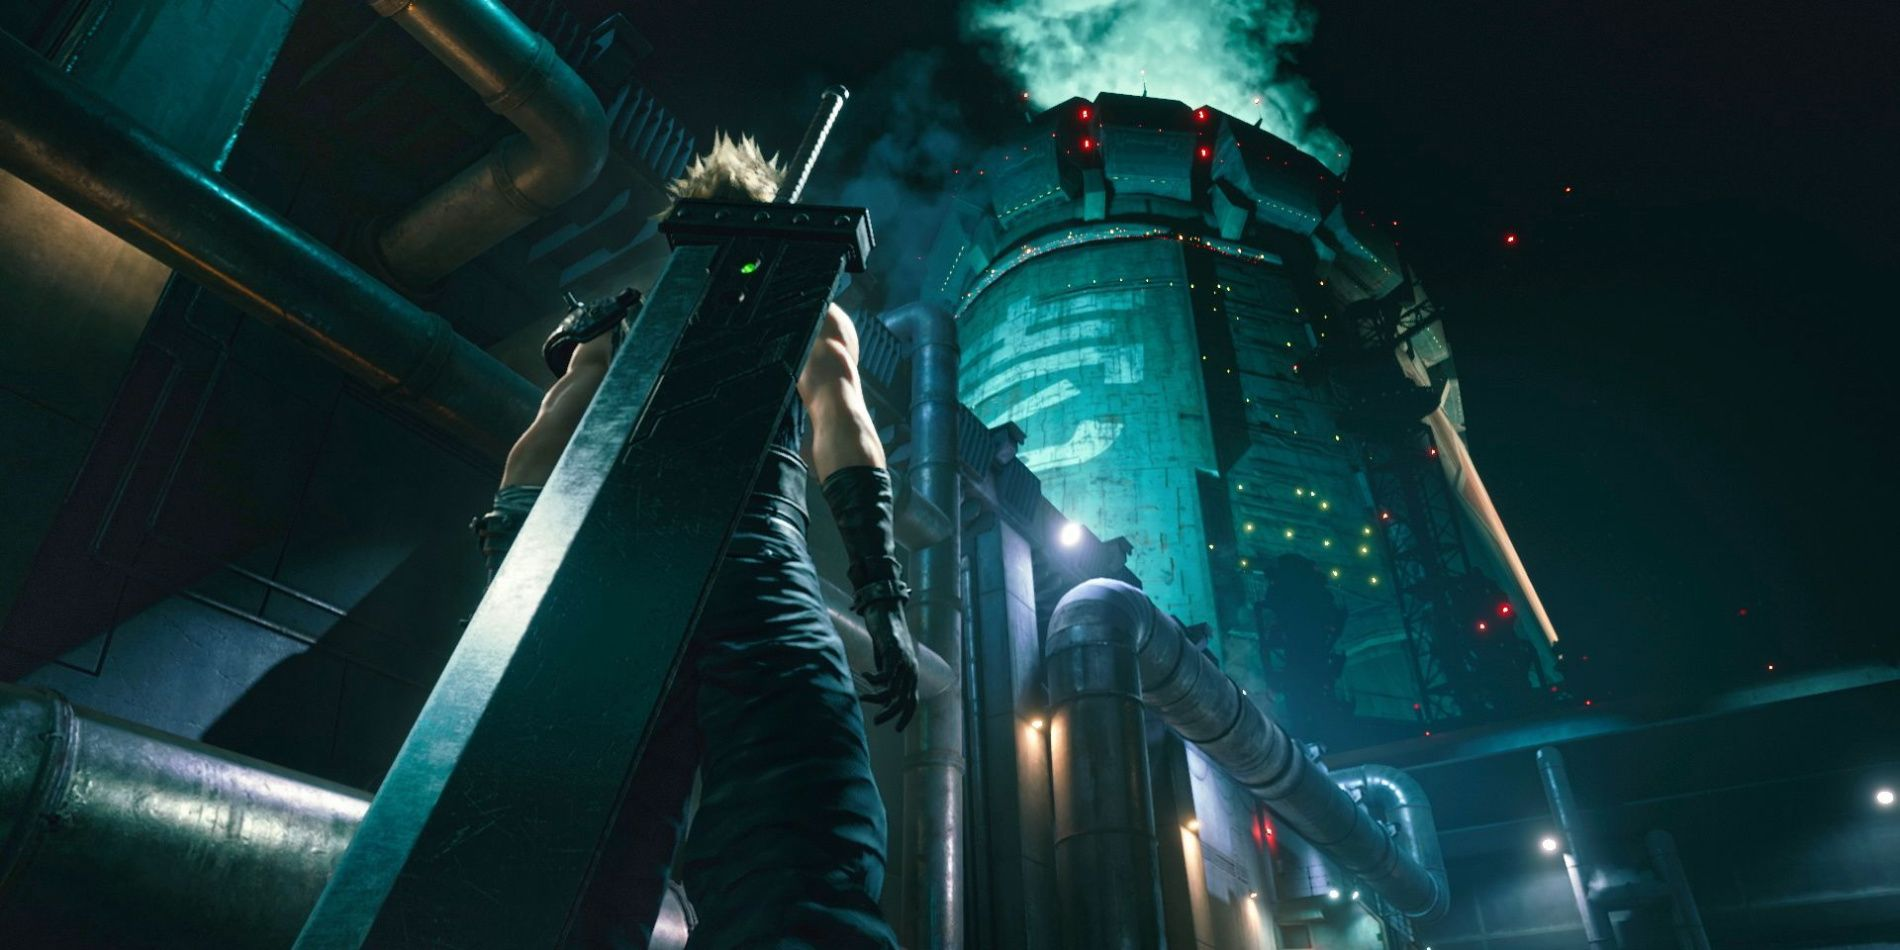 Final Fantasy VII Remake Producer Discusses Adapting Characters